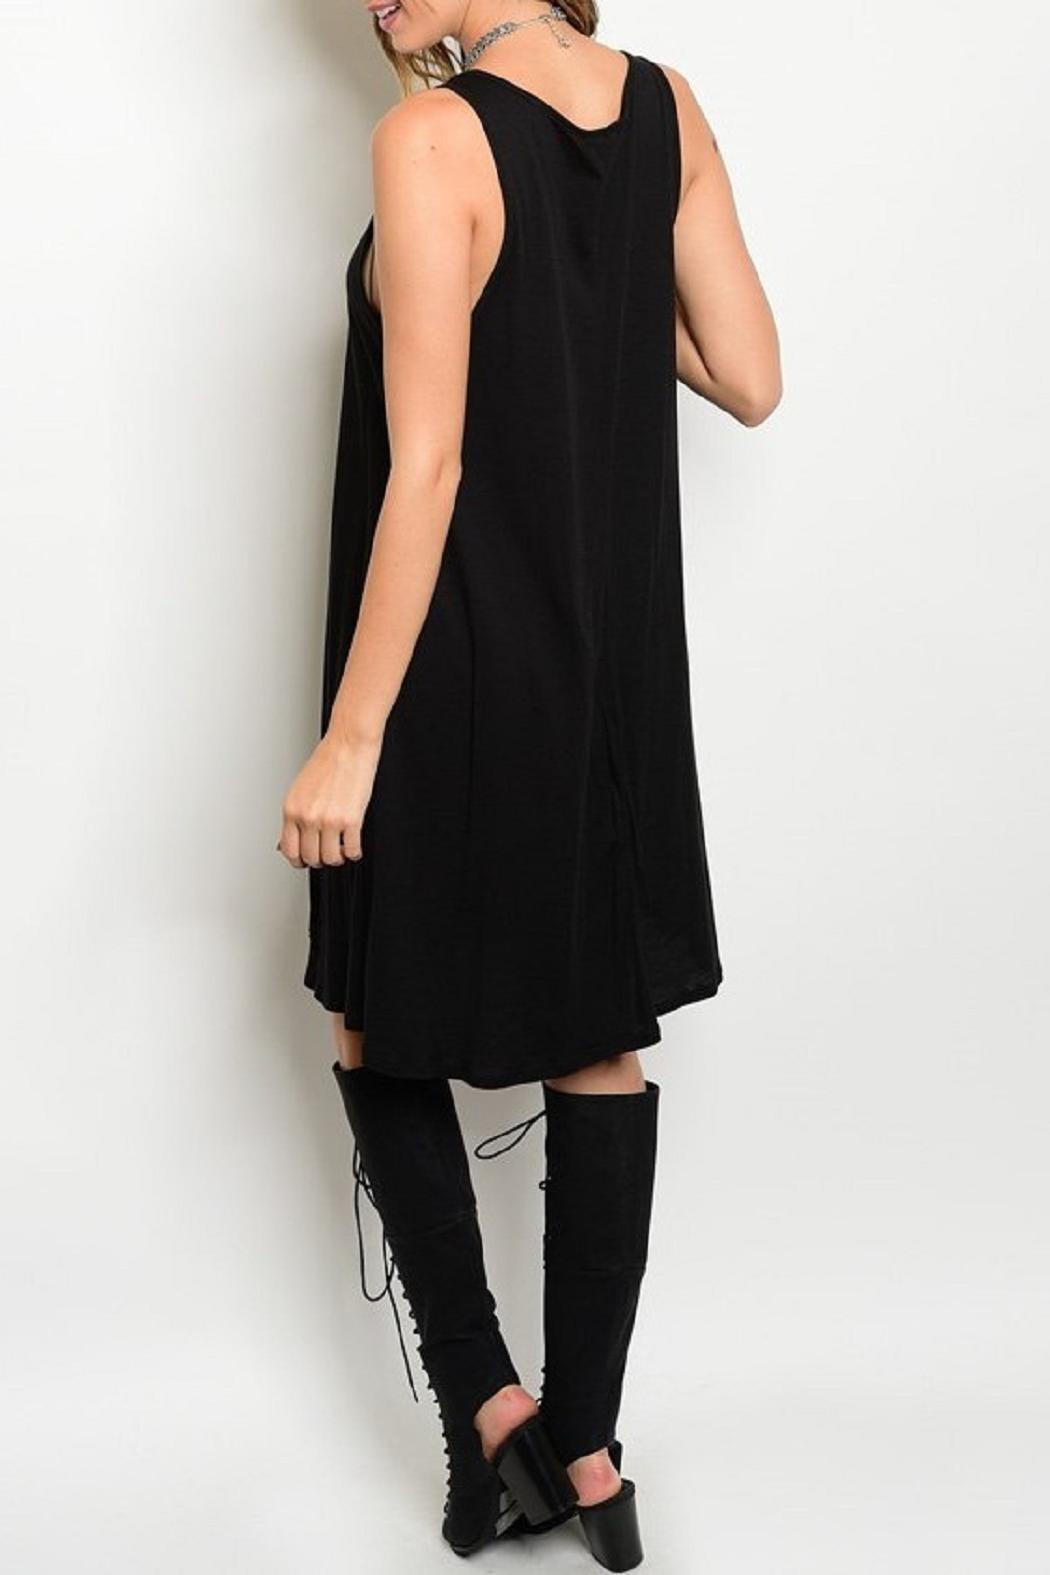 Adore Clothes & More Gray Fringe Dress - Front Full Image